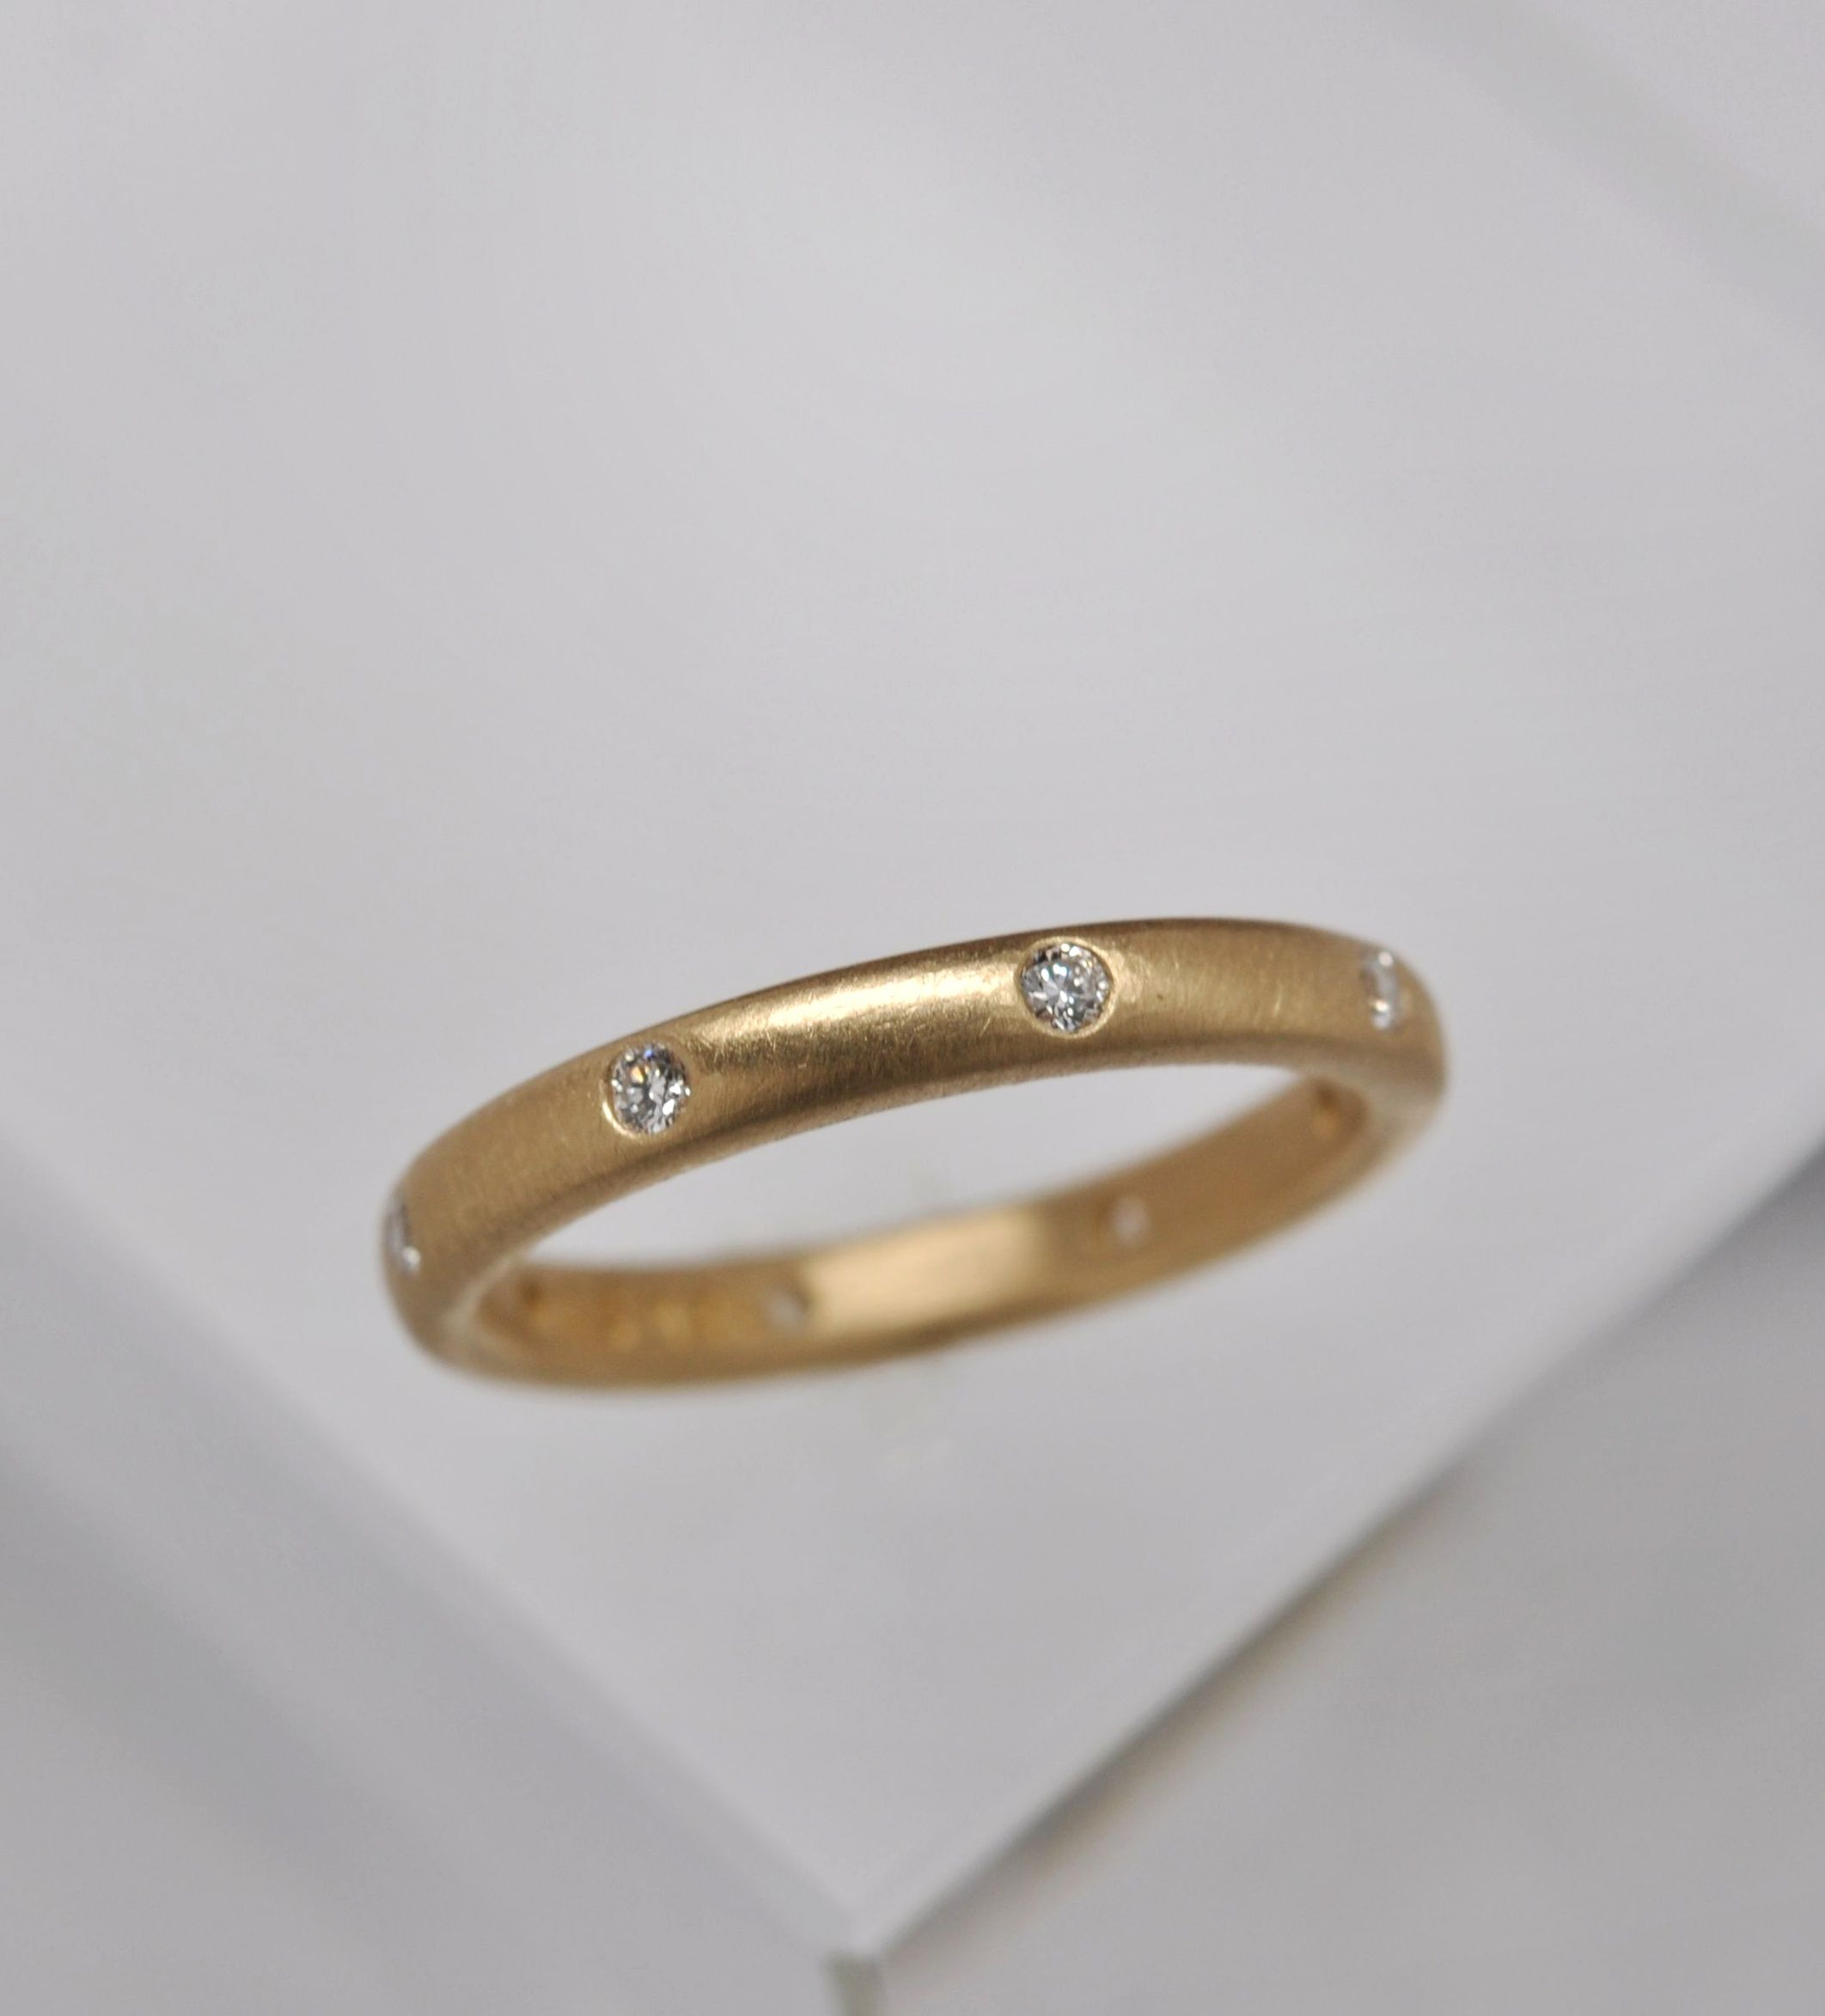 multiband marco gallery lyst bicego yellow diamond ring gold jewelry bands metallic in product